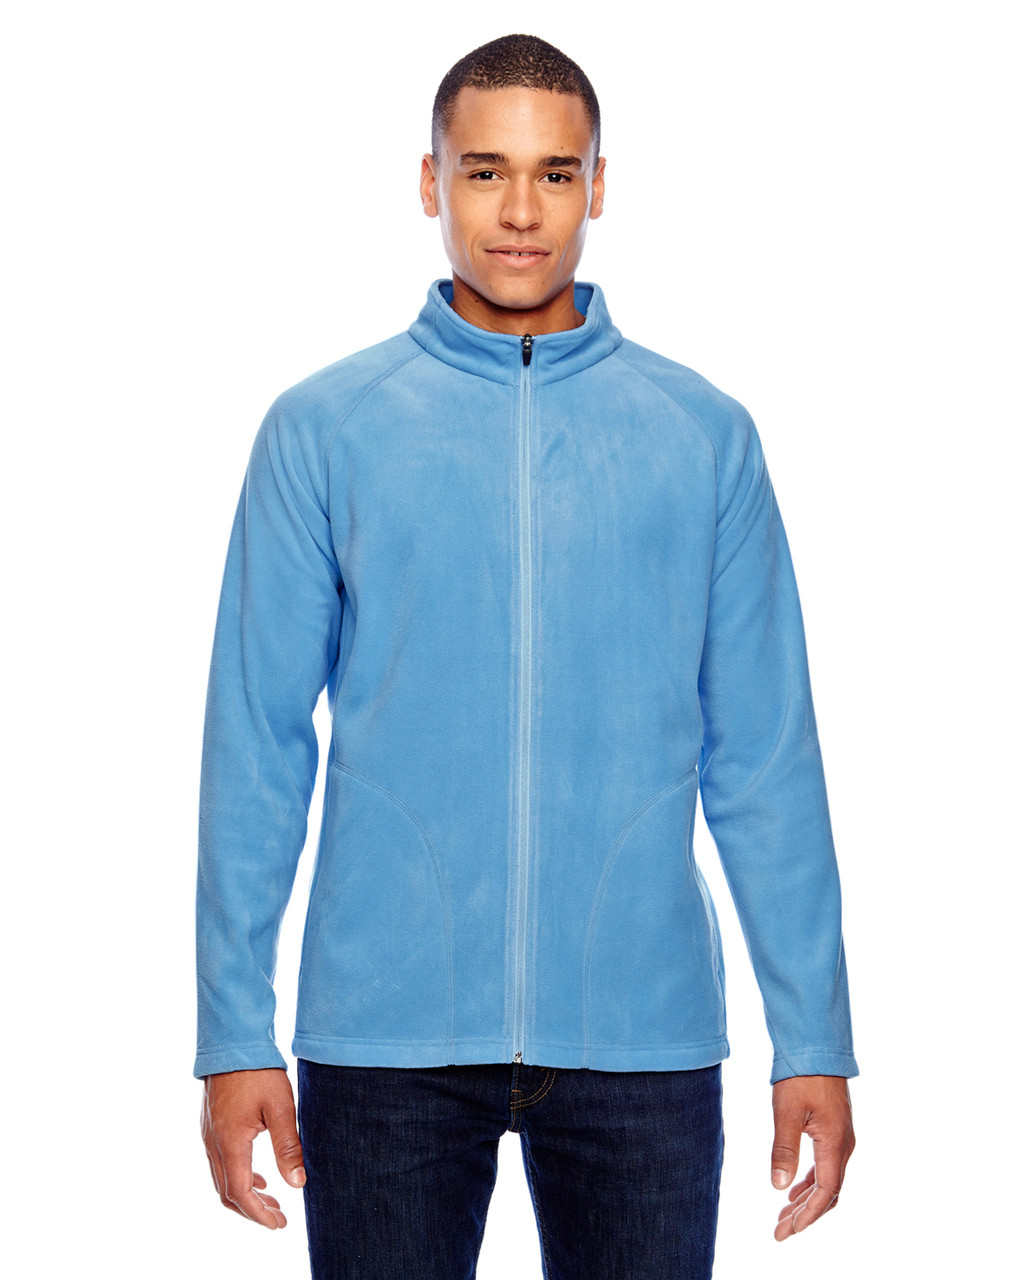 Light Blue - TT90 Team 365 Men's Campus Microfleece Jacket | BlankClothing.ca